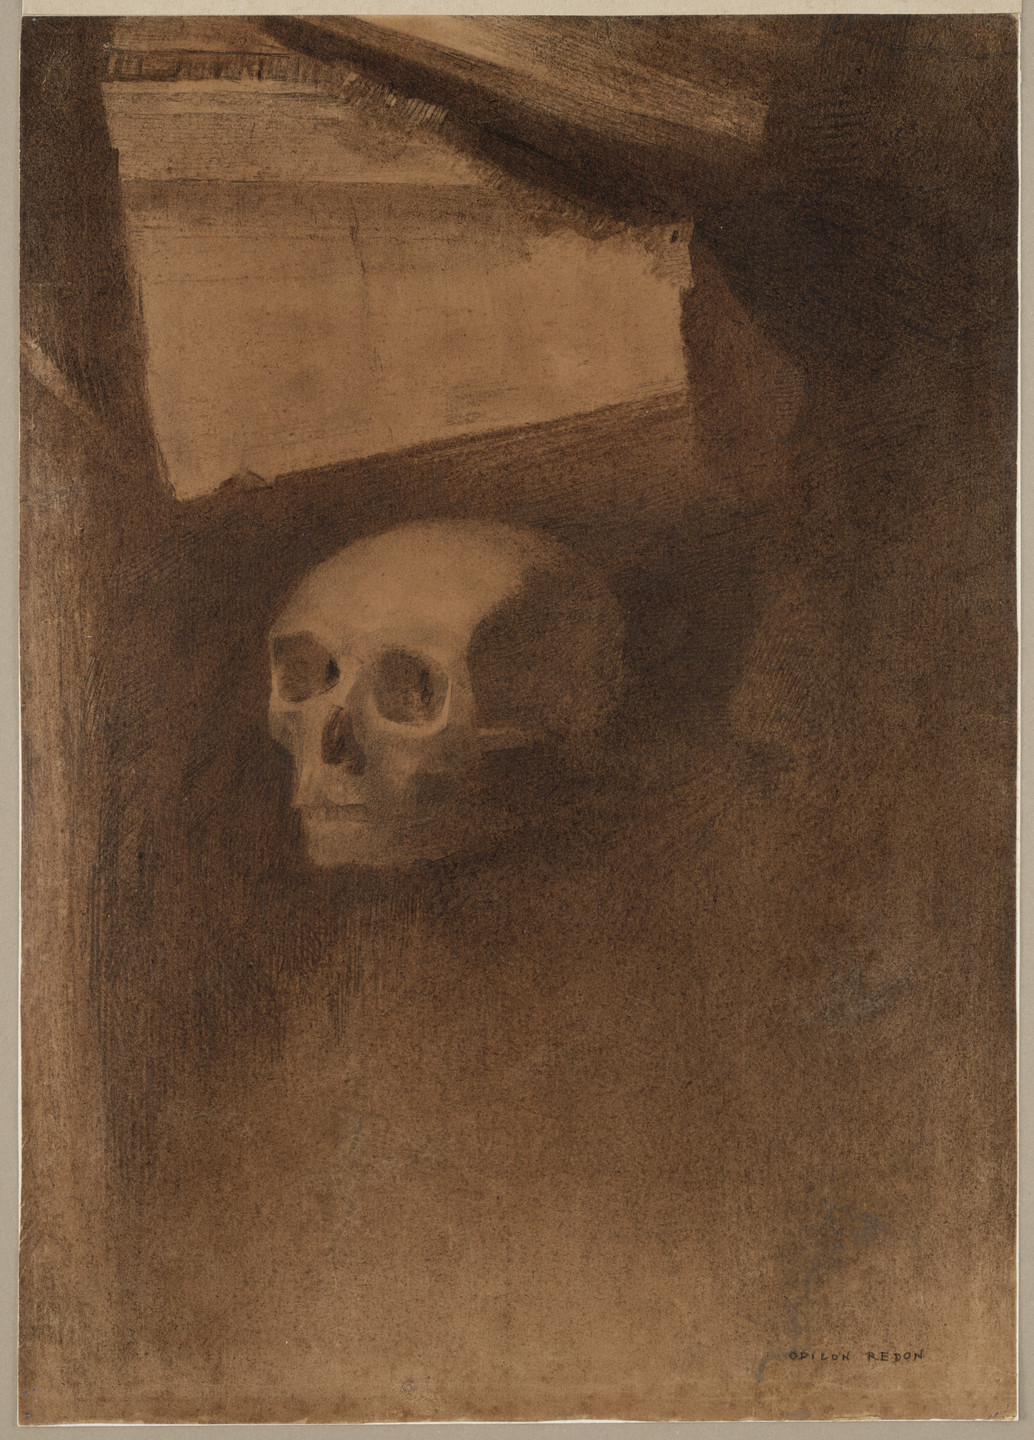 Odilon Redon. Through the Crack a Death's-Head Was Projected. (c. 1886)